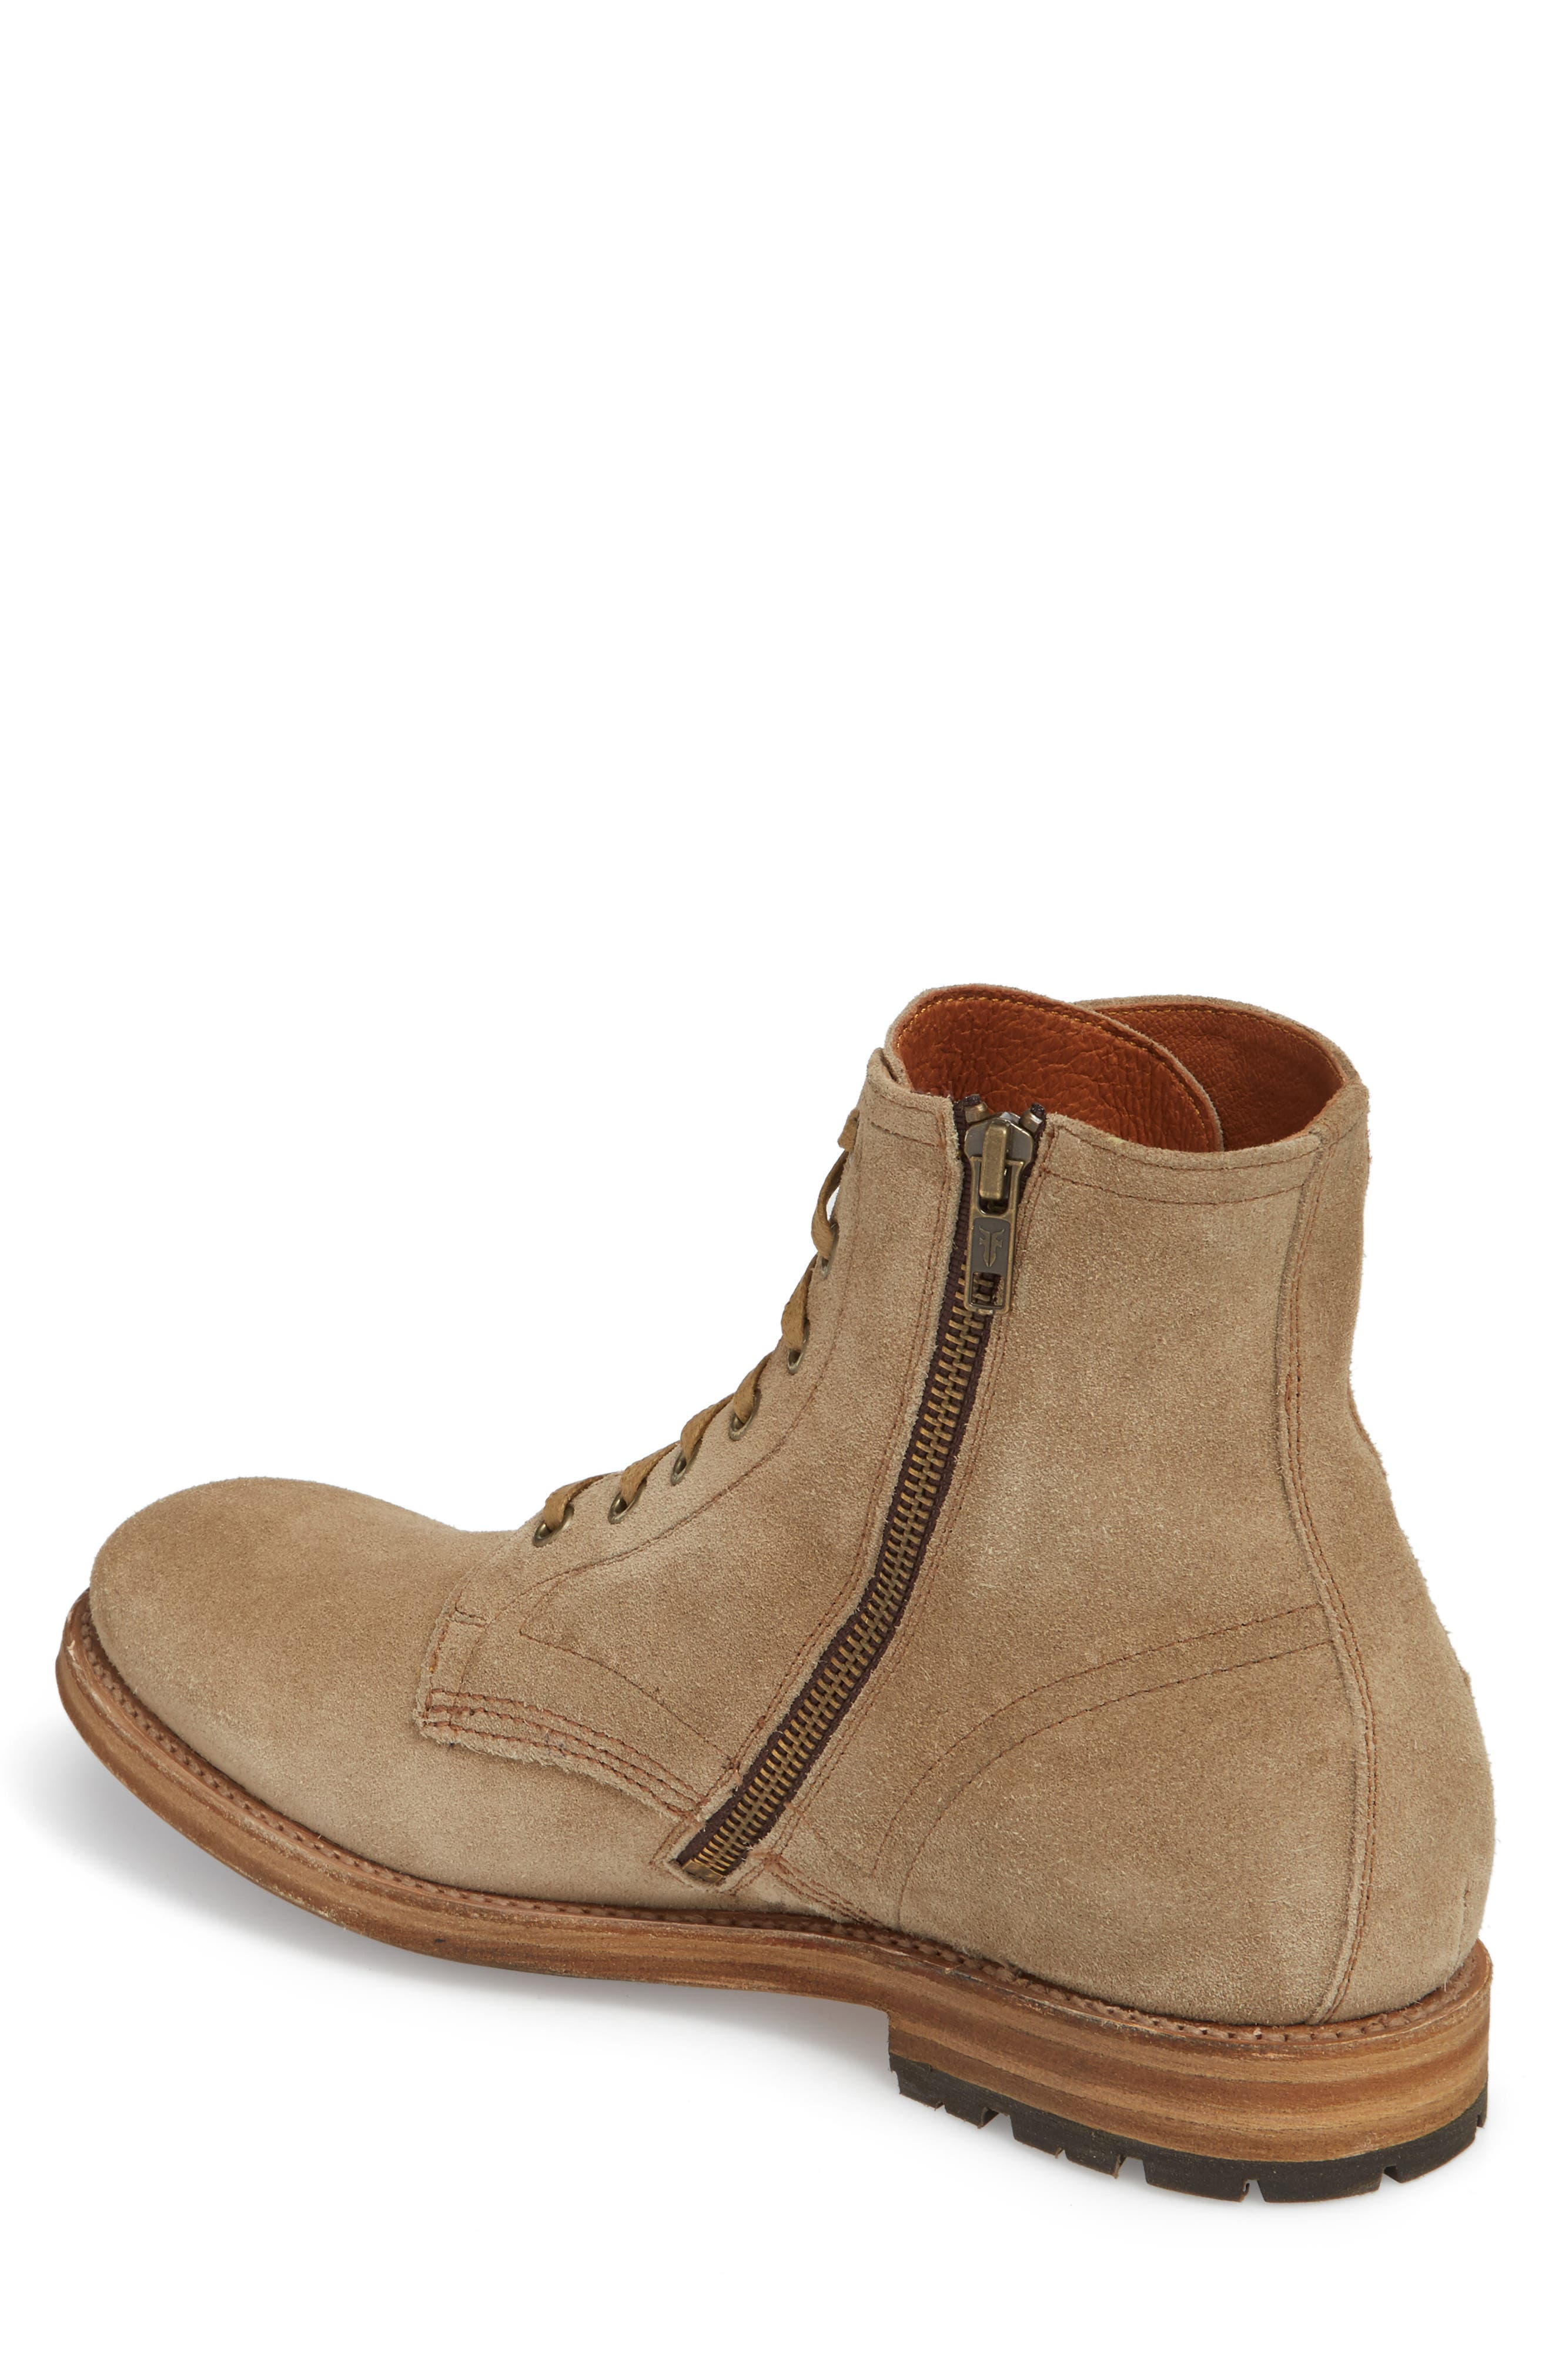 Fry Bowery Side Zip Combat Boot,                             Alternate thumbnail 2, color,                             250